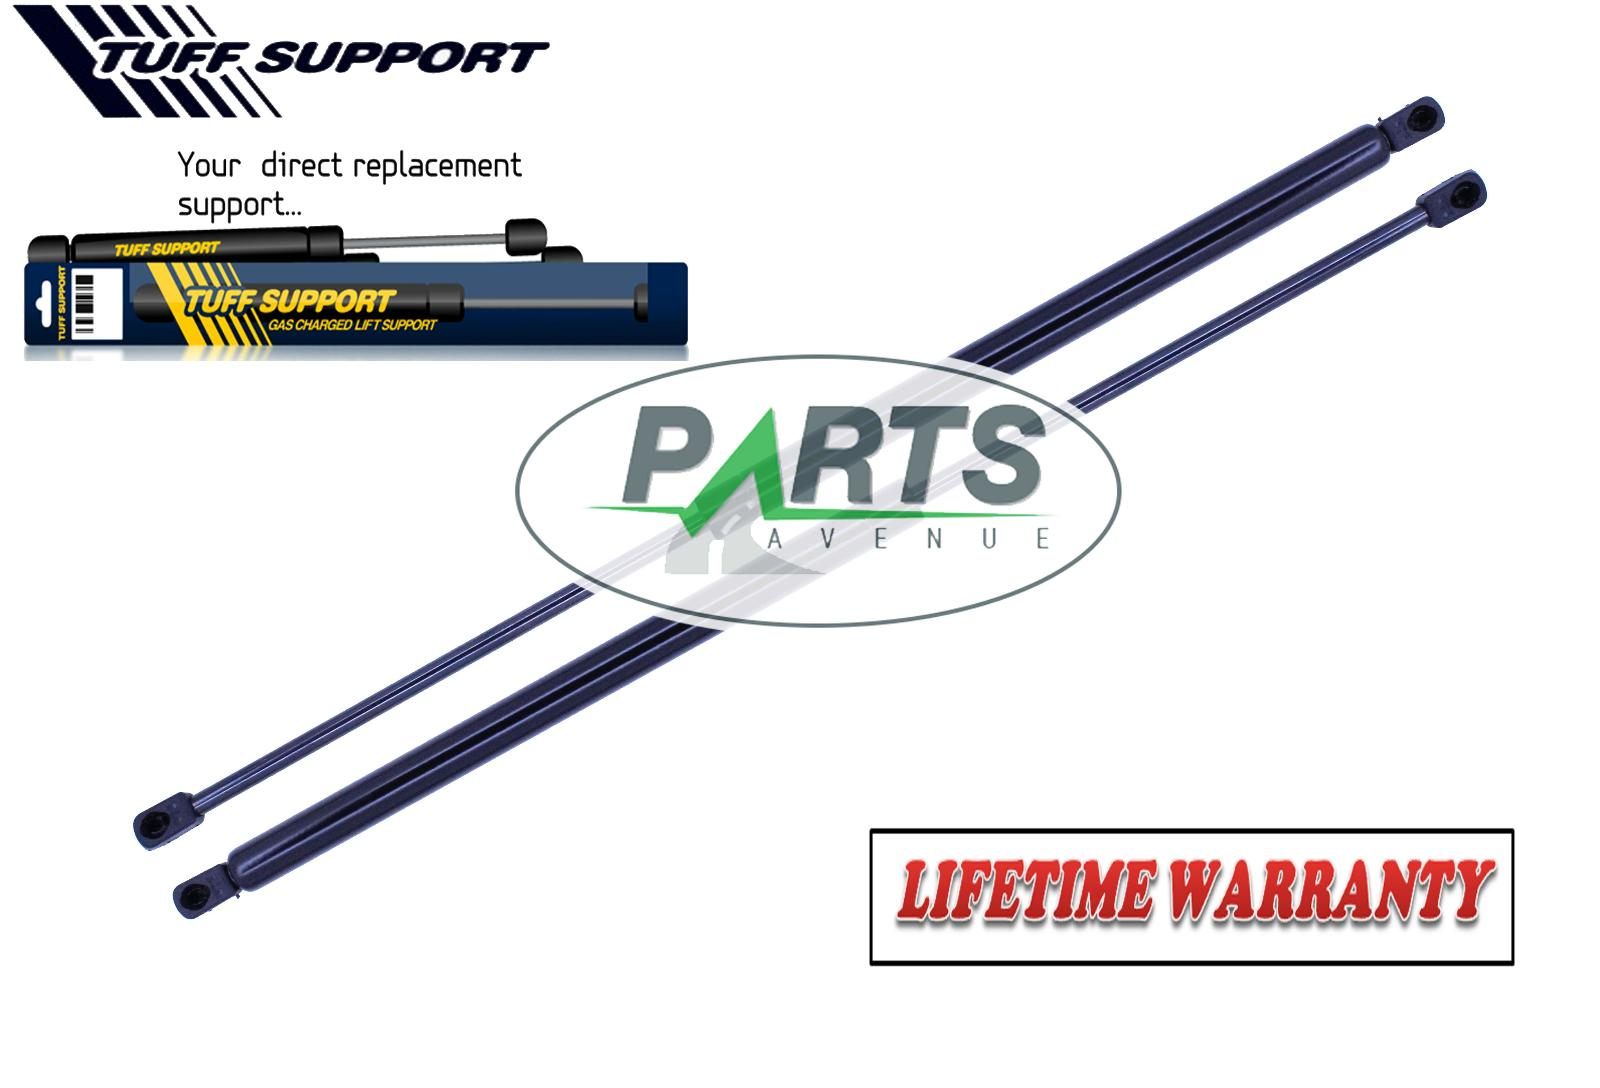 2 FRONT HOOD LIFT SUPPORTS SHOCKS STRUTS ARMS PROPS RODS RODS DAMPER CONVERTIBLE